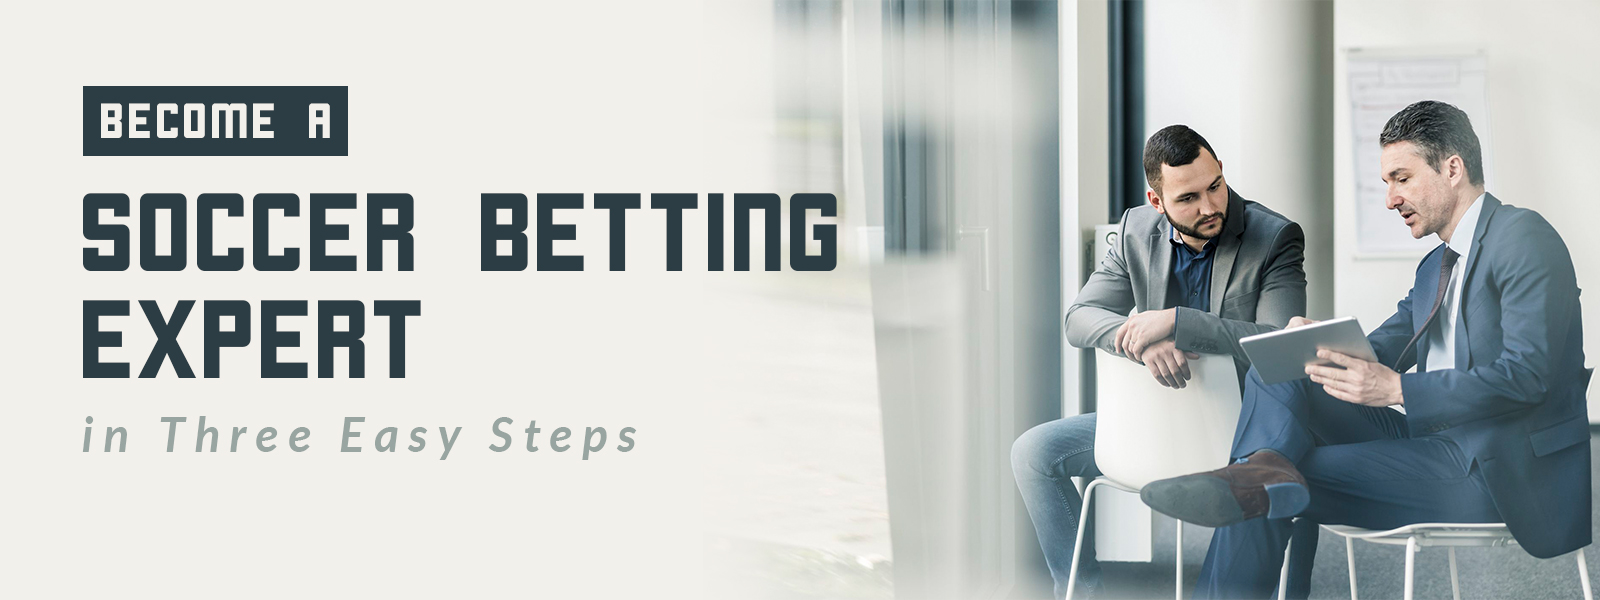 Become A Soccer Betting Expert In Three Easy Steps